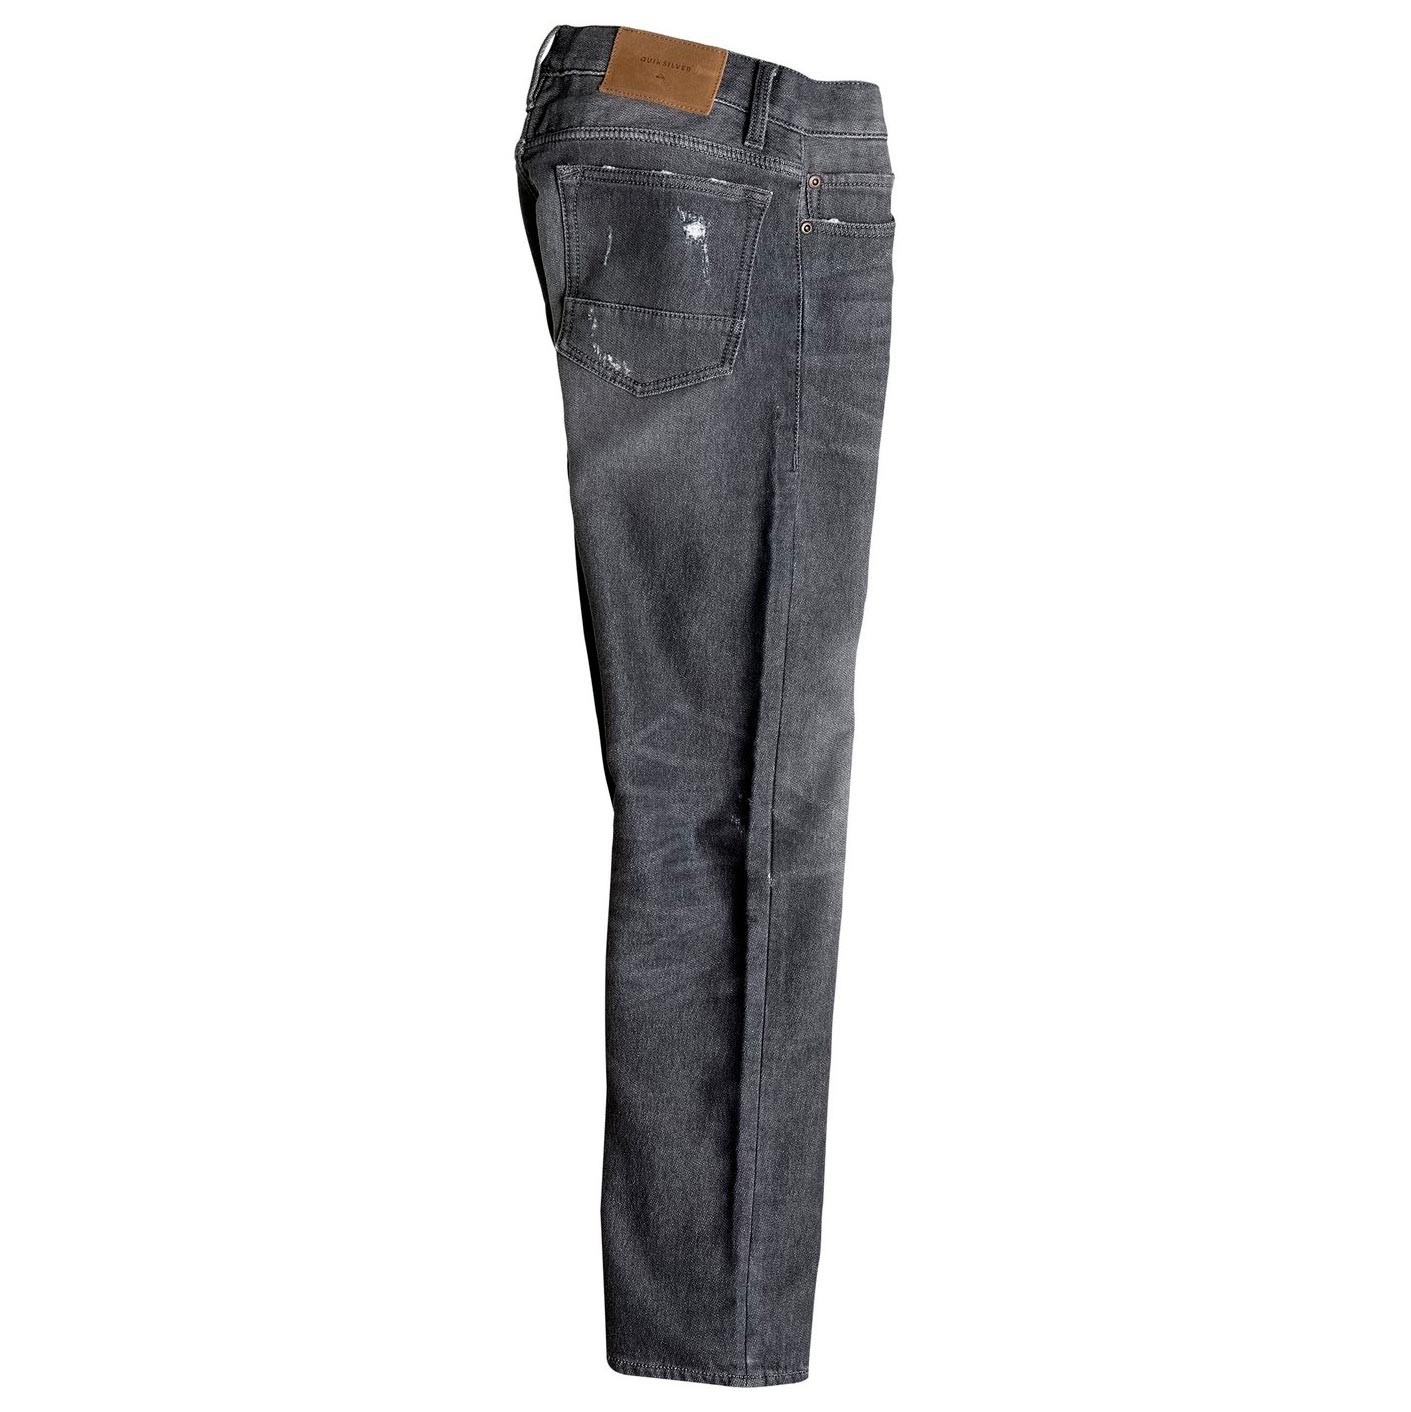 Jeansy Quiksilver Distorsion Grey Damaged Aw Youth